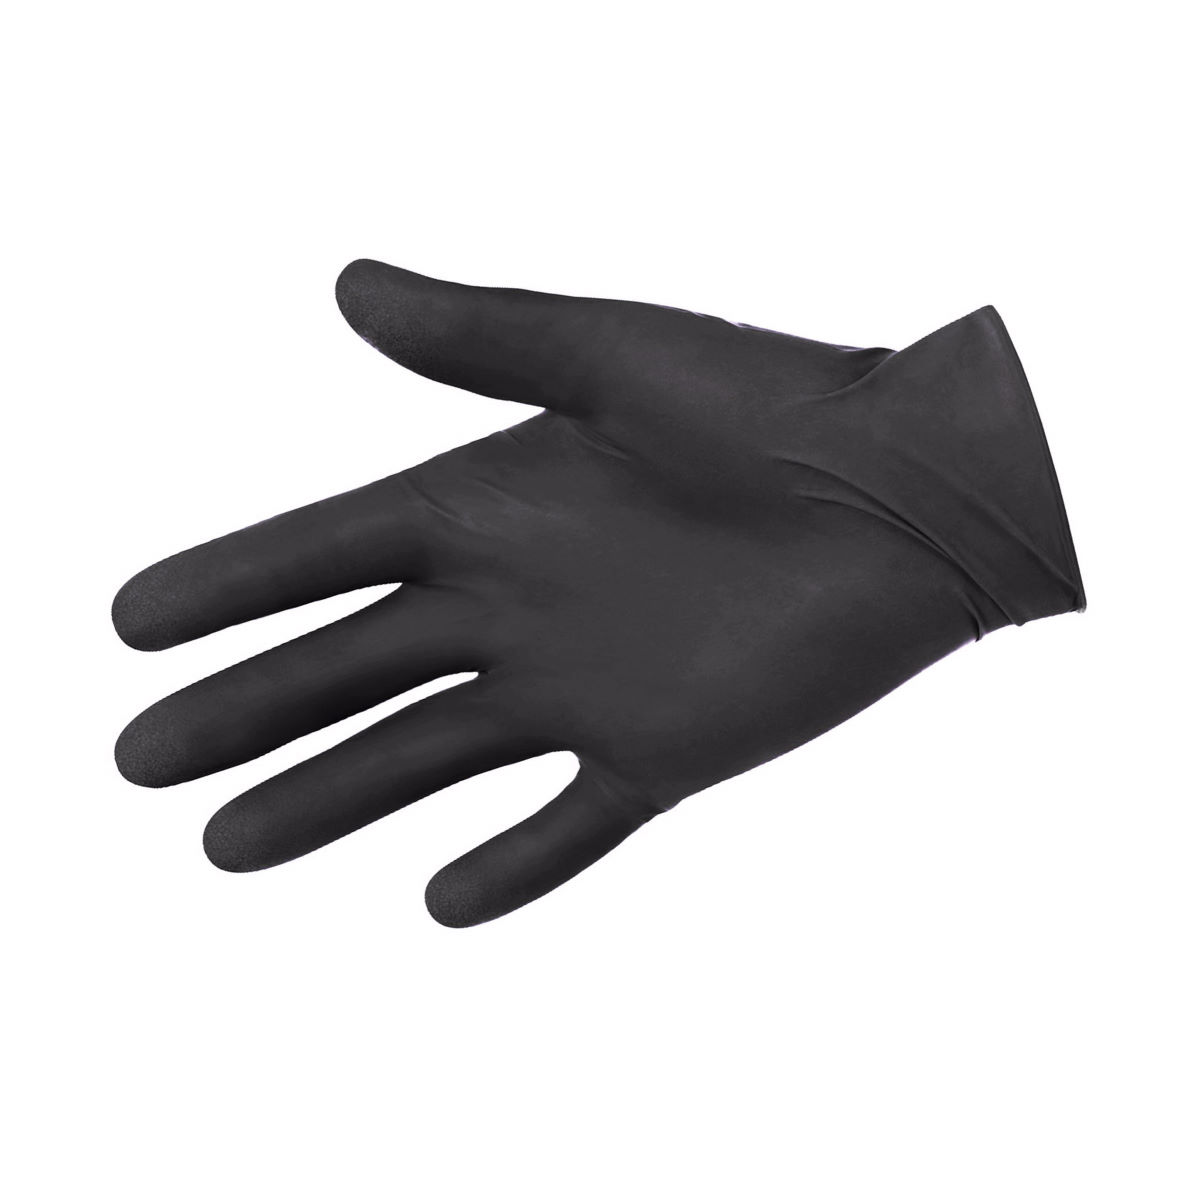 X-Tools Nitrile Mechanic Gloves